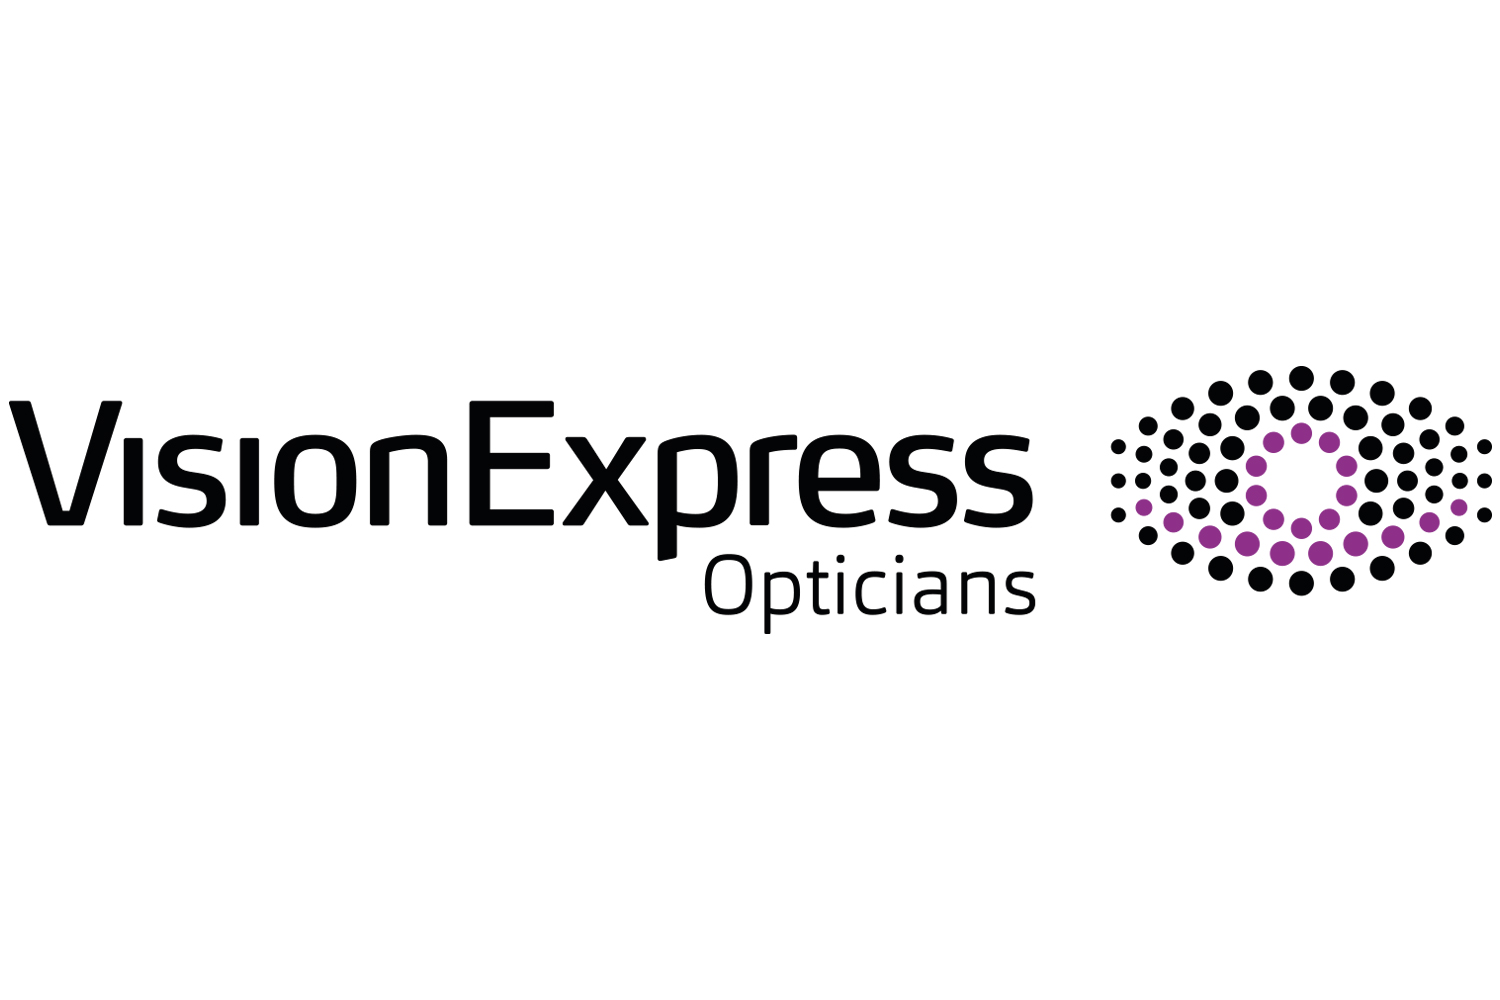 How to use your Vision Express discount